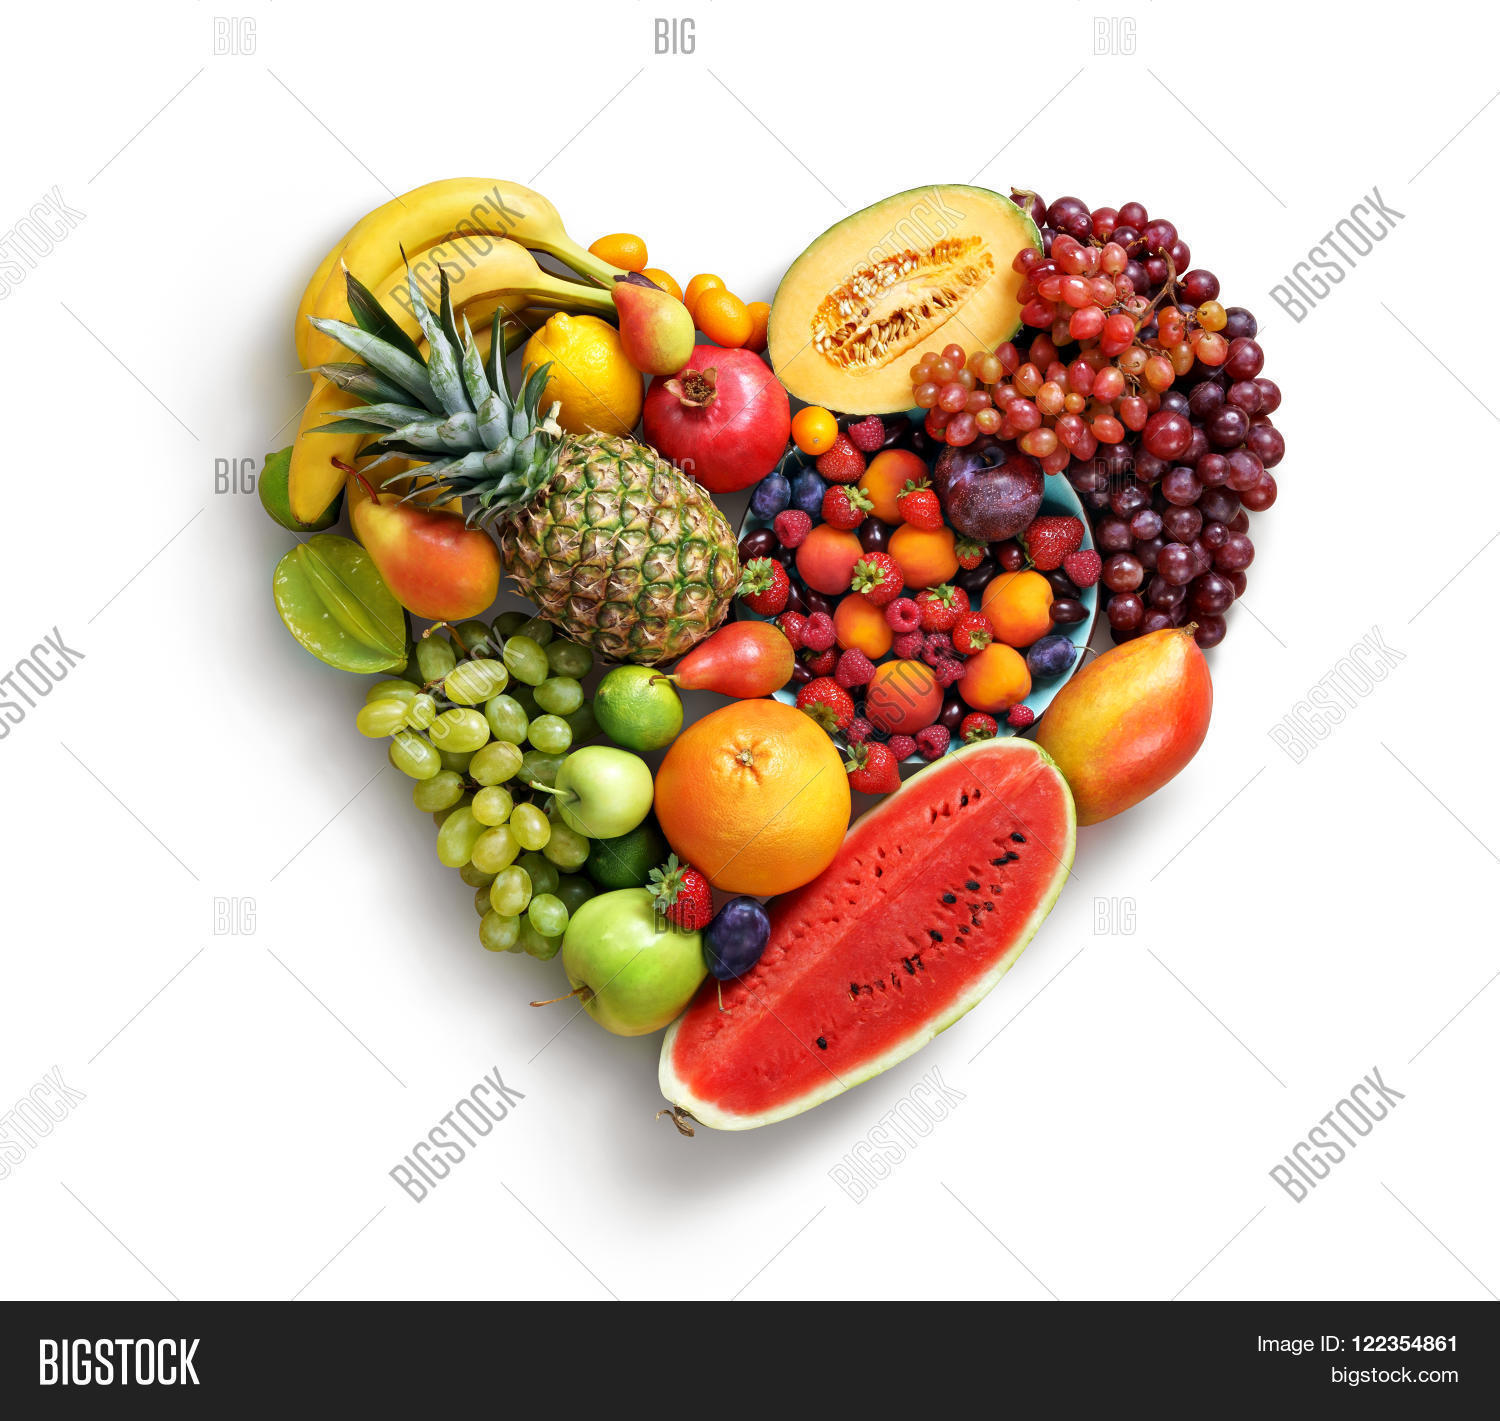 Food background studio photo of different fruits and vegetables - Fruits Diet Concept Food Photography Of Heart Made From Different Fruits Isolated